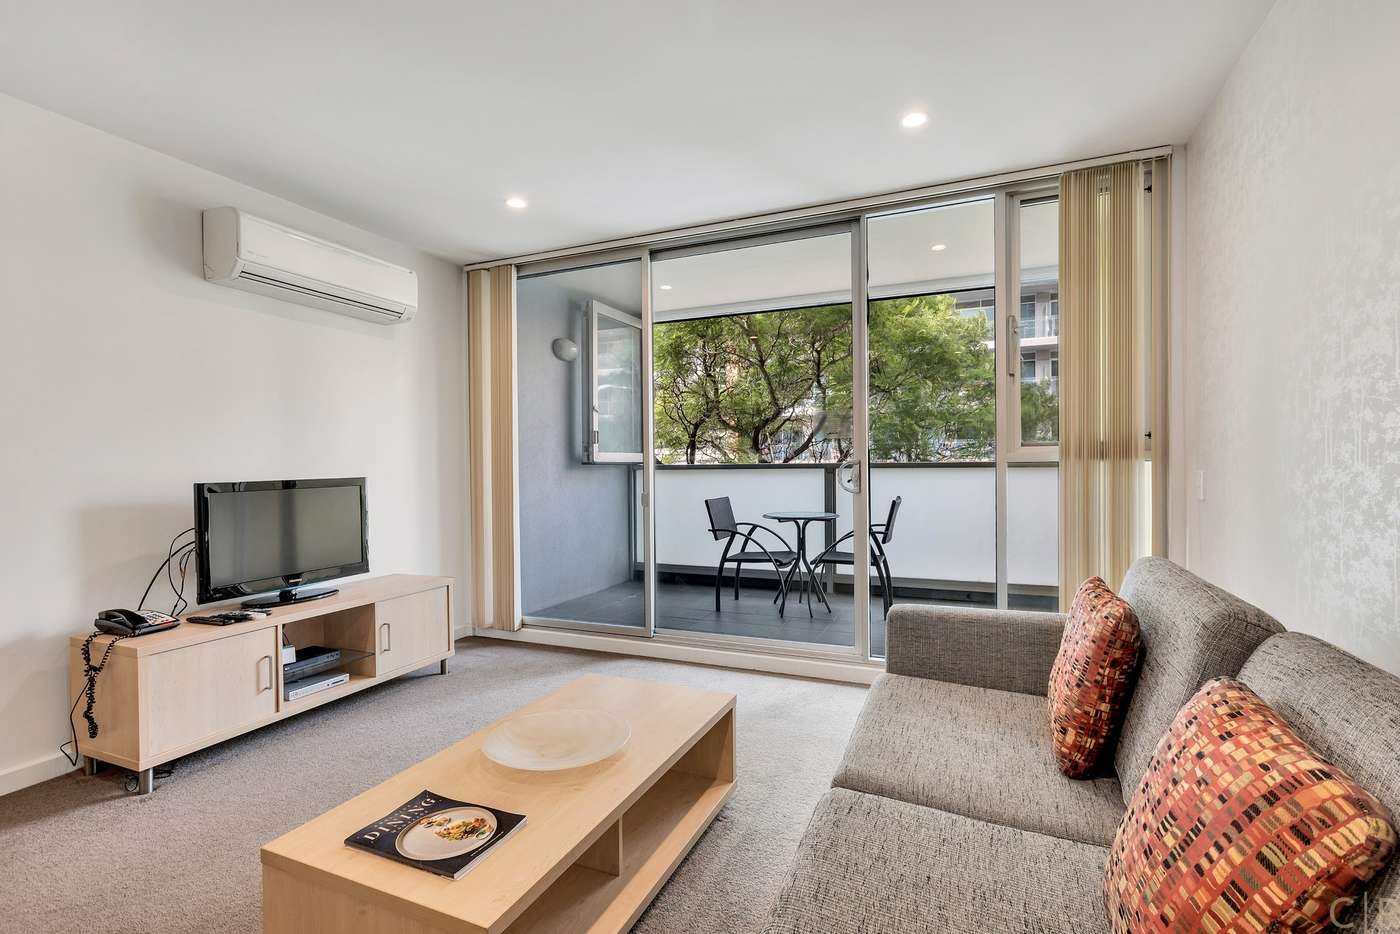 Fifth view of Homely apartment listing, 309/185 Morphett Street, Adelaide SA 5000